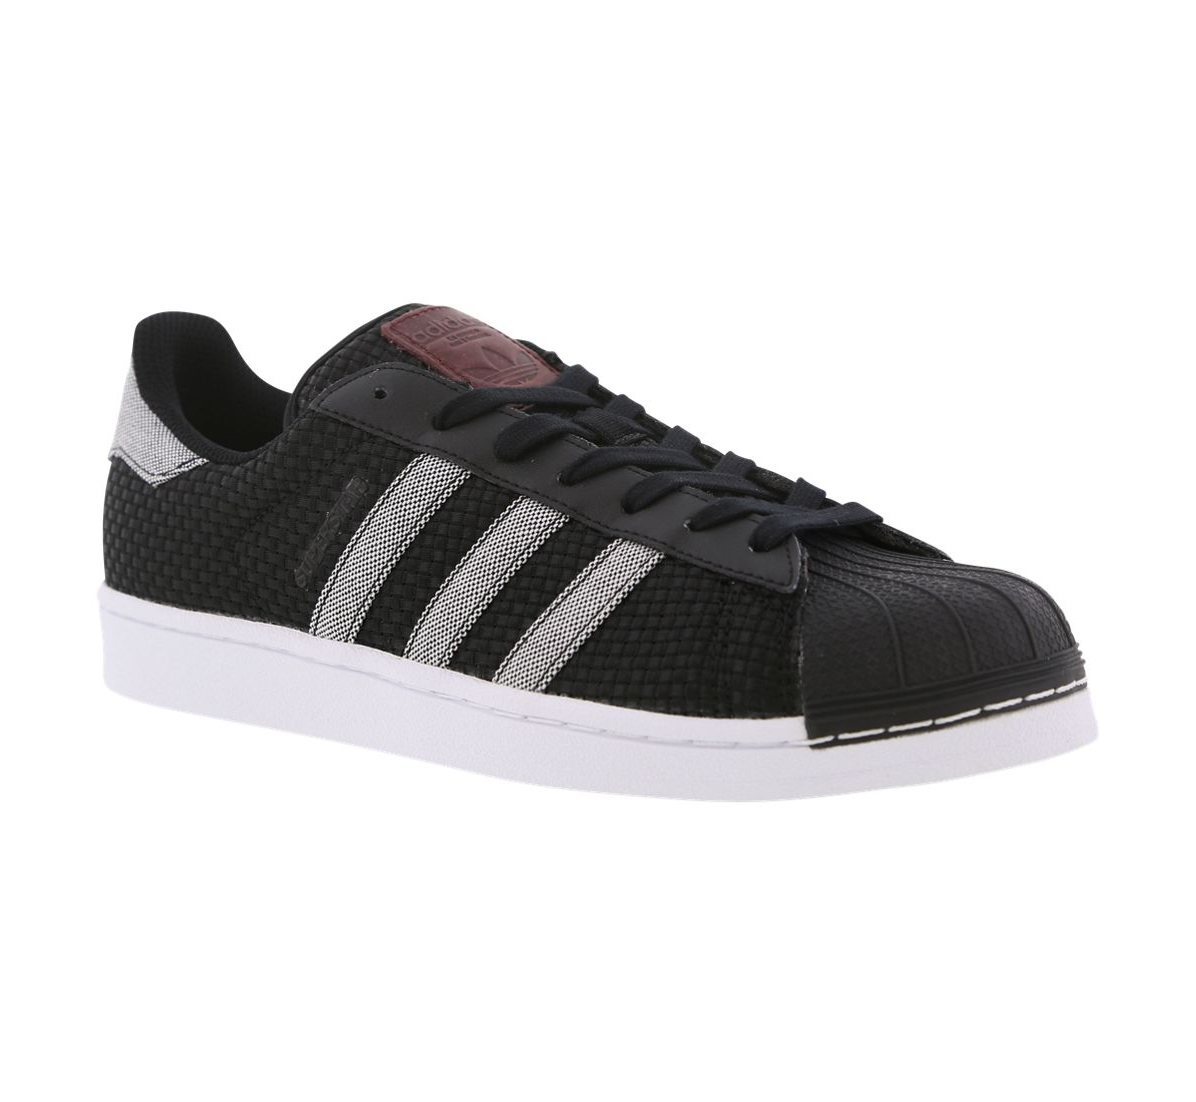 Adidas Originals Superstar Riviera Mens Trainers Sneakers Shoes - CP9441 - Black